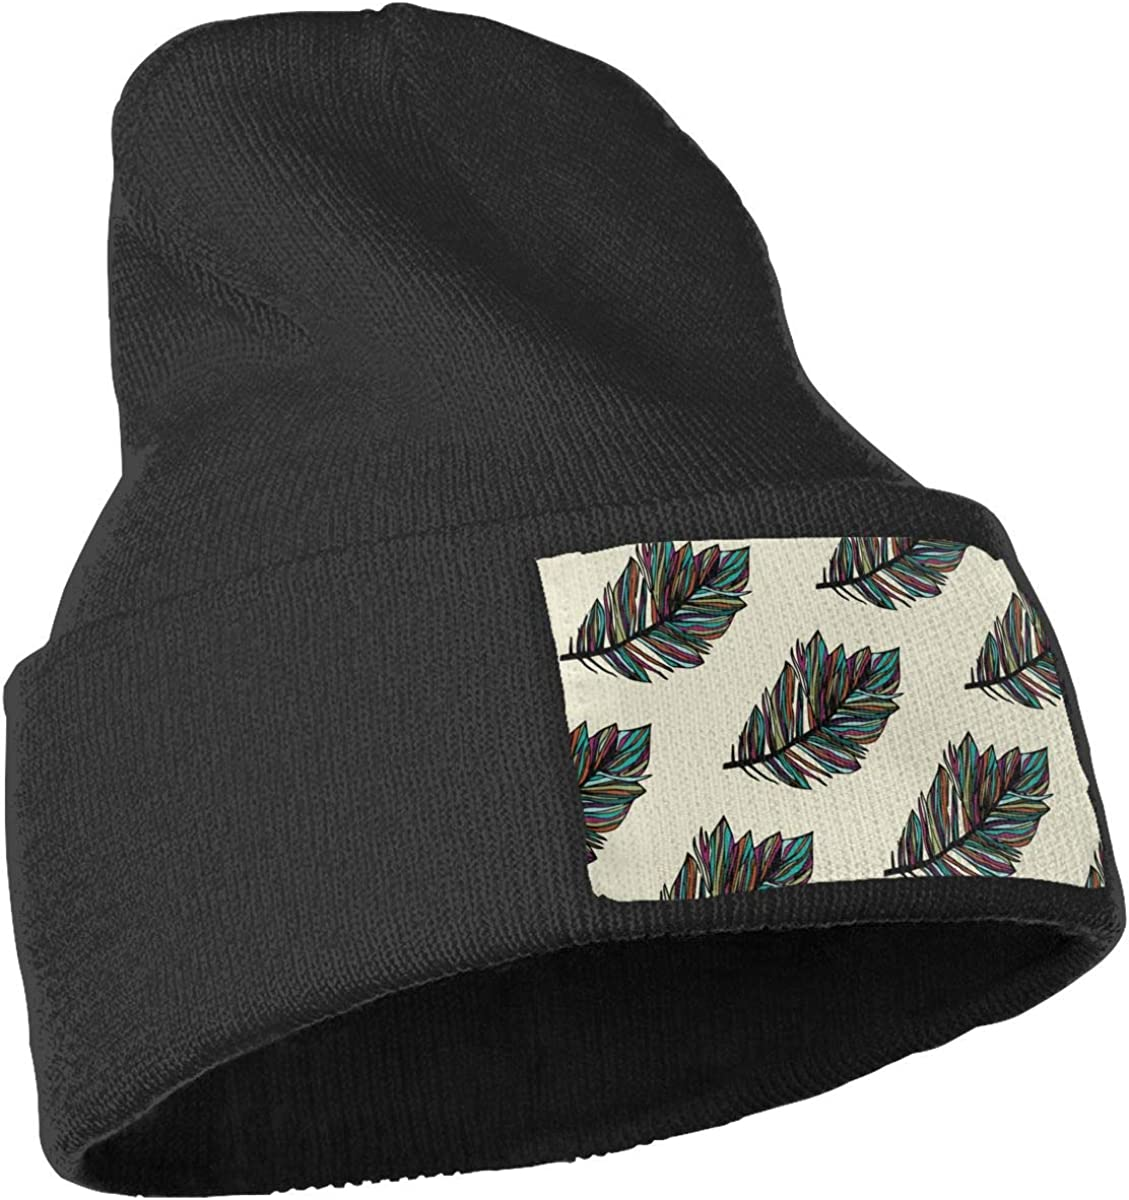 PCaag7v Feather Beanie Hat Winter Solid Warm Knit Unisex Ski Skull Cap